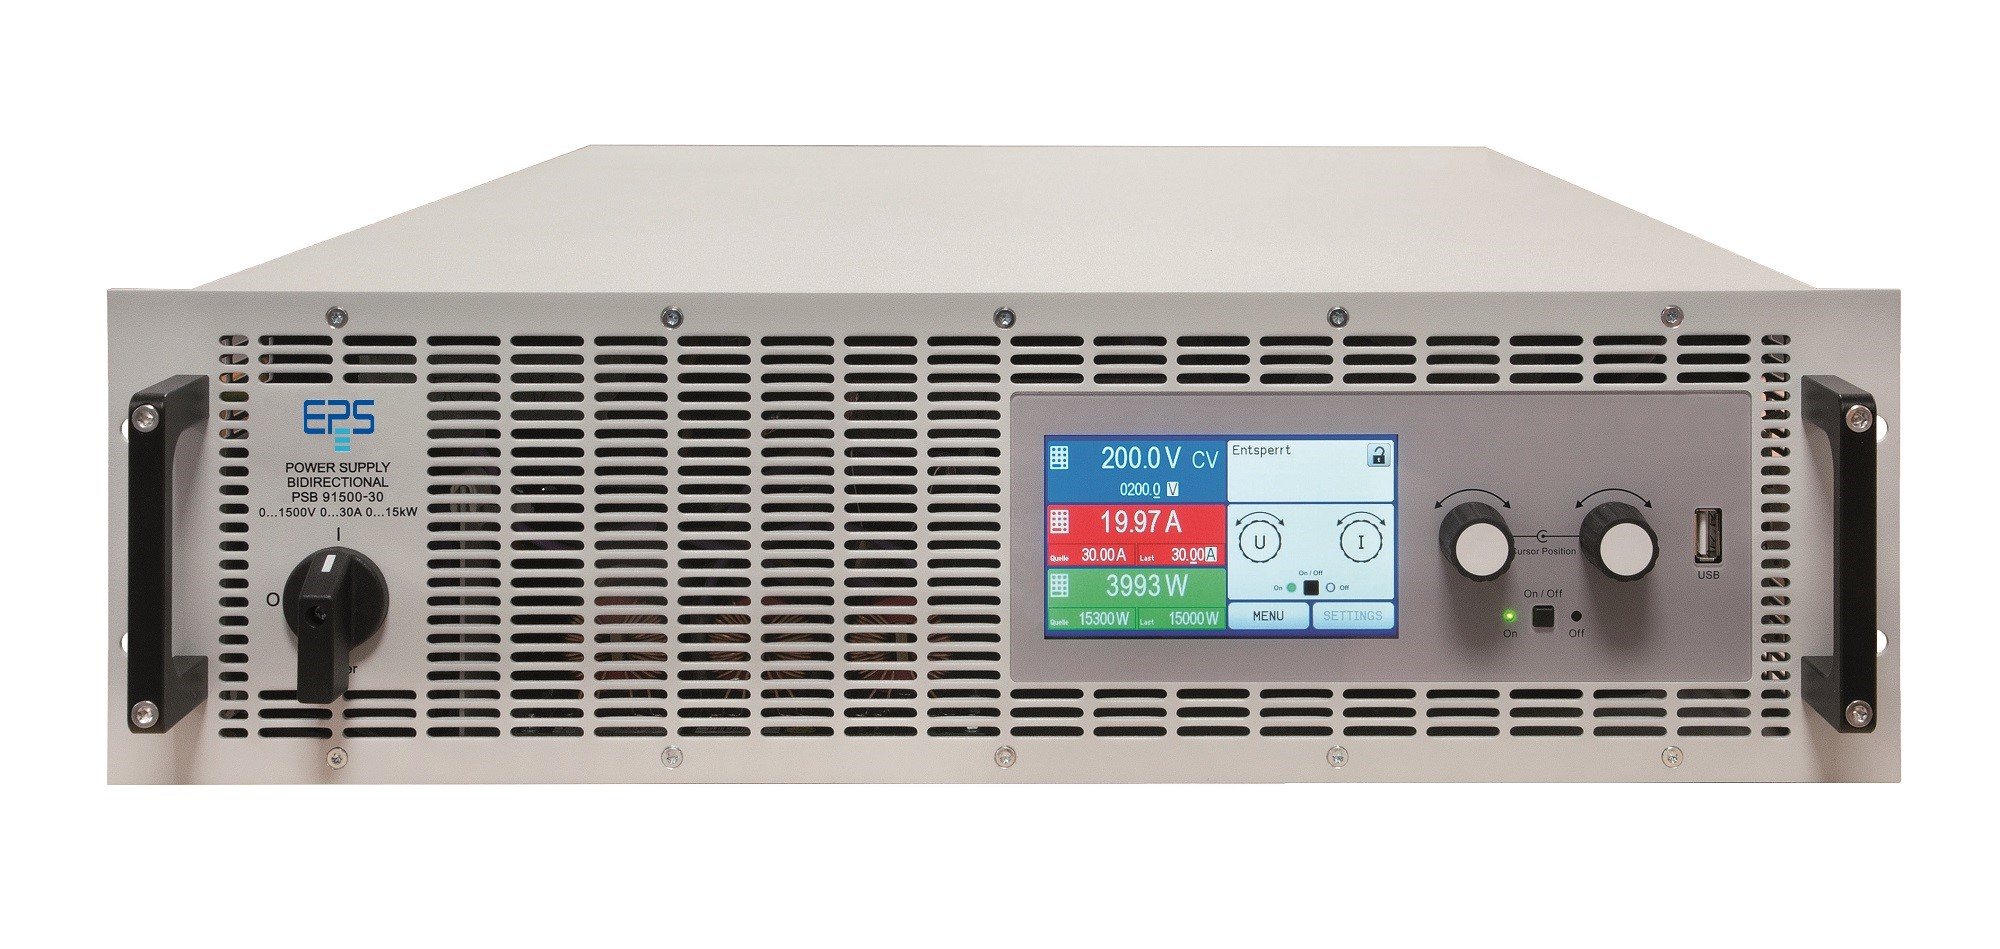 E/PSB 9000-3U Bidirectional DC-Power Supply with energy recovery 5-240 kW